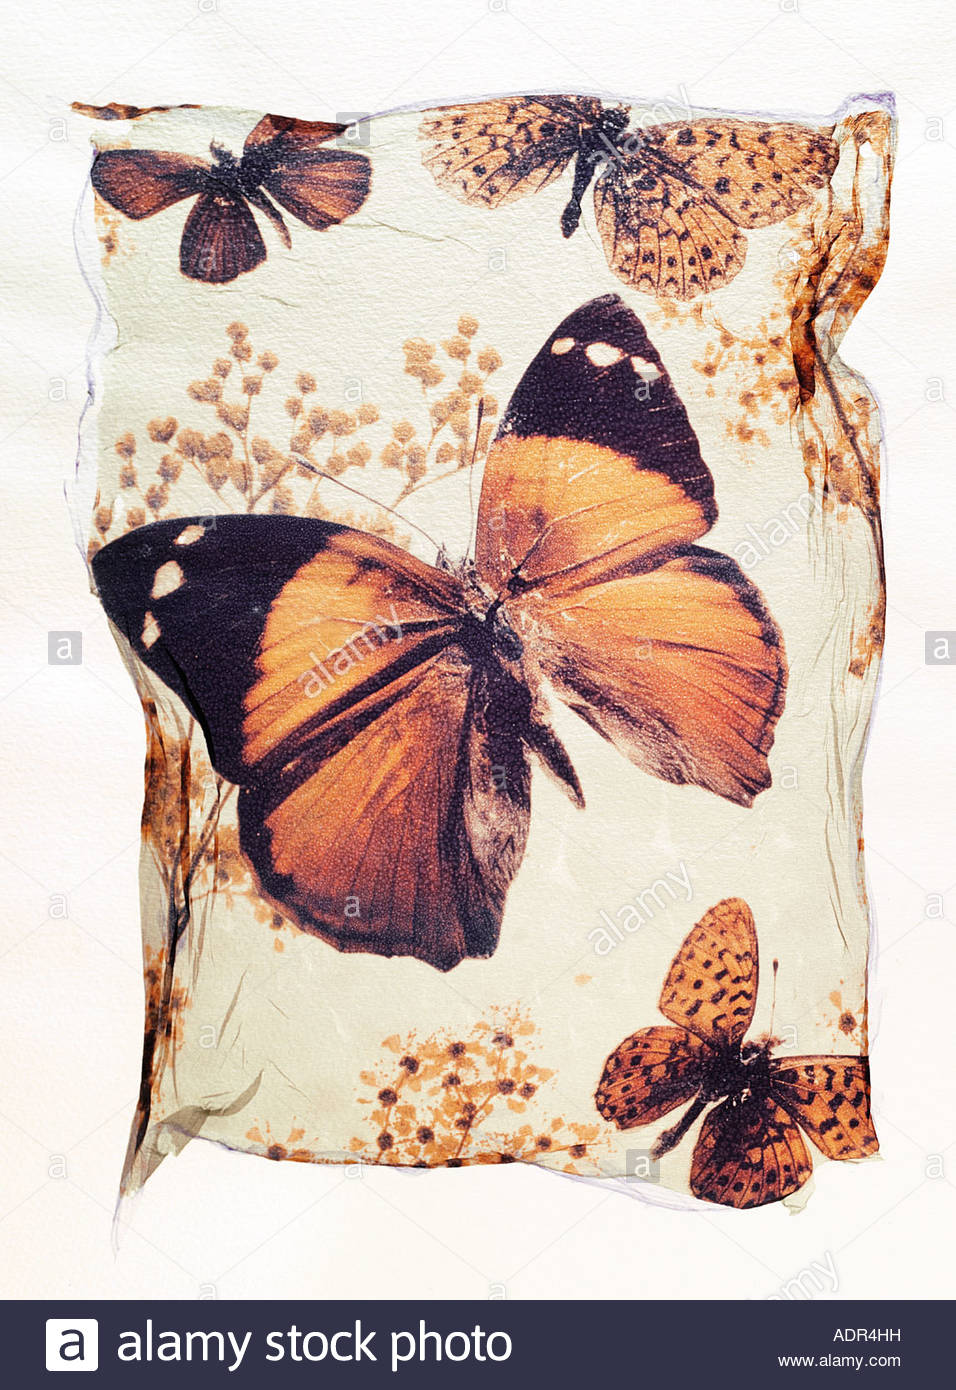 Polaroid lift of an brown butterfly on a flower, opened winged. A concept art photo - Stock Image